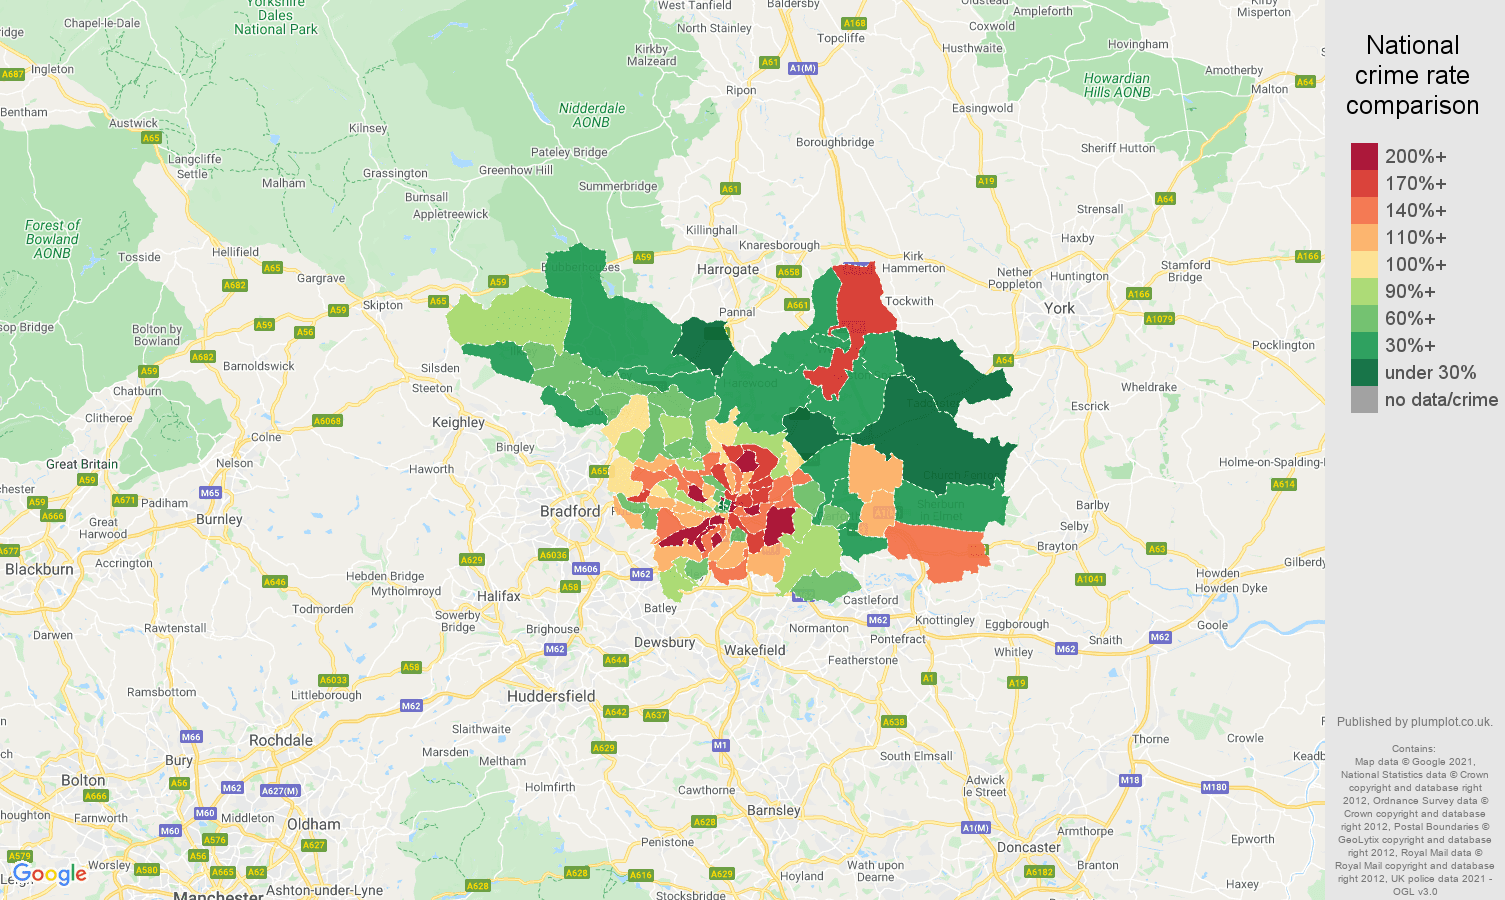 Leeds vehicle crime rate comparison map